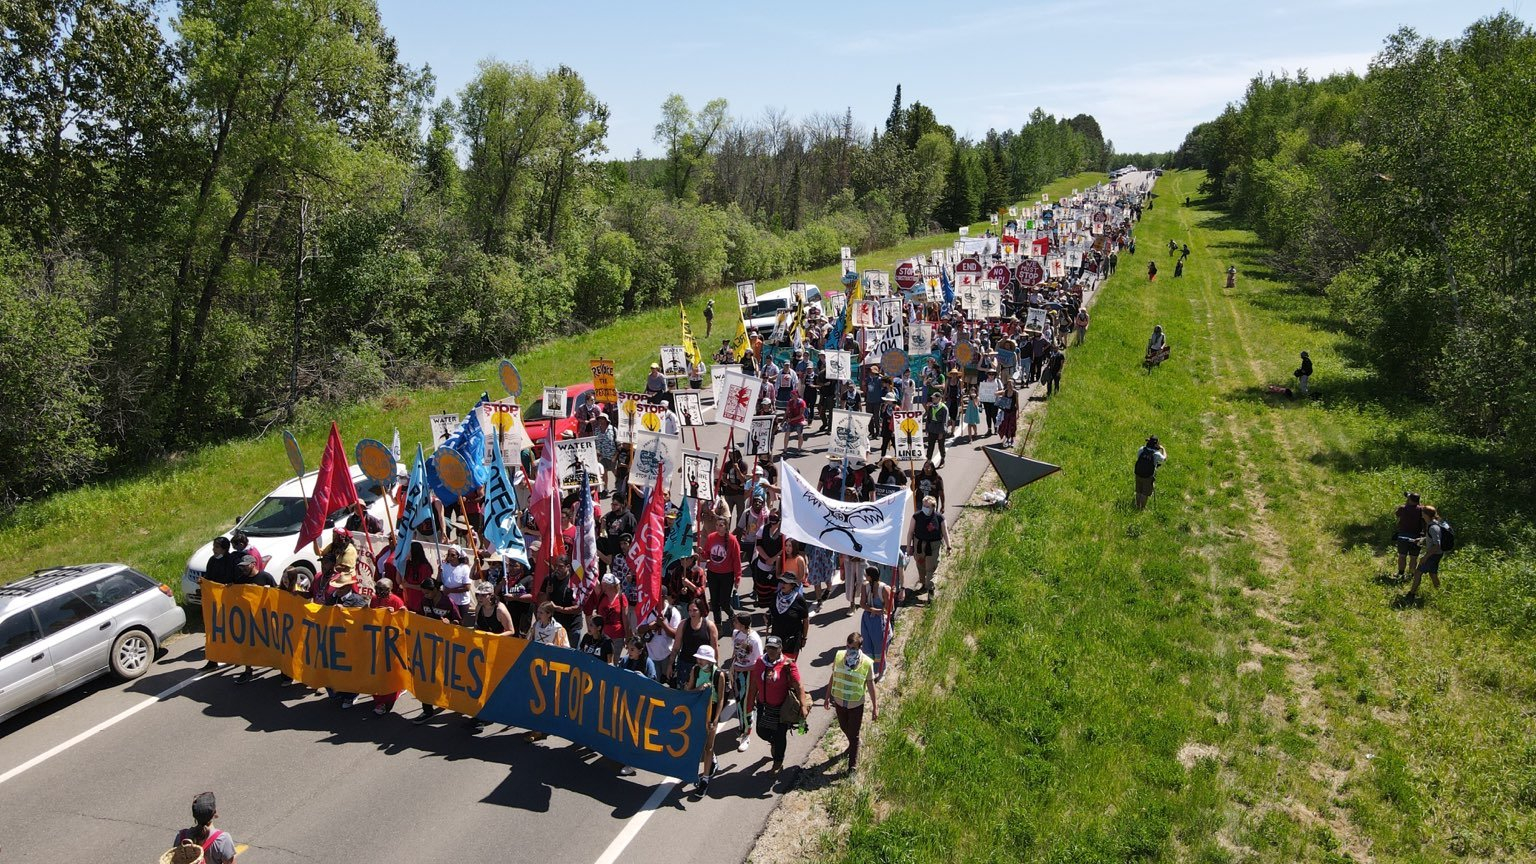 Crowd marches to stop Line 3